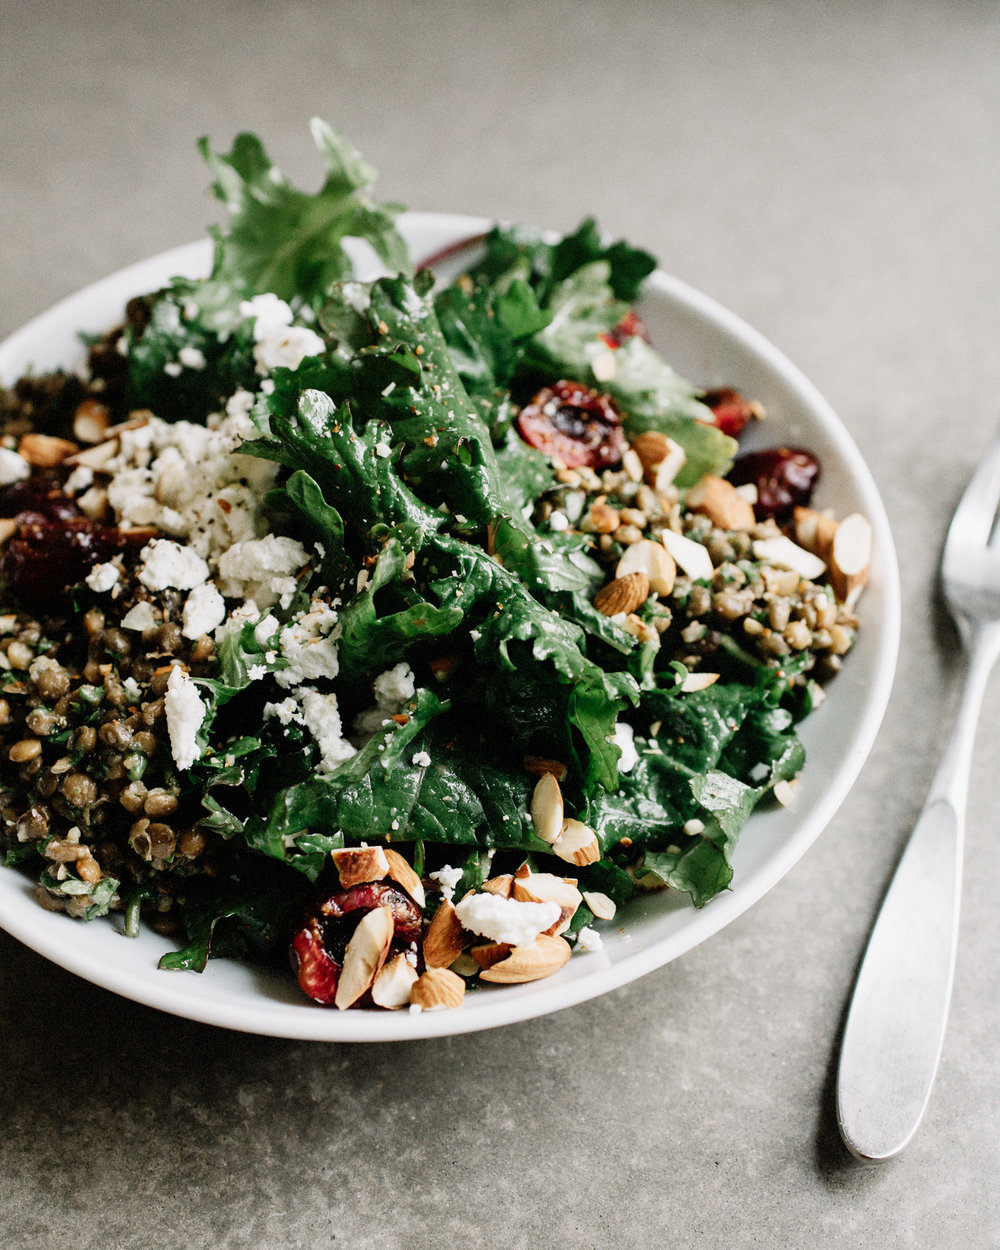 BABY KALE SALAD WITH CHERRIES, MARINATED LENTILS + GOAT CHEESE